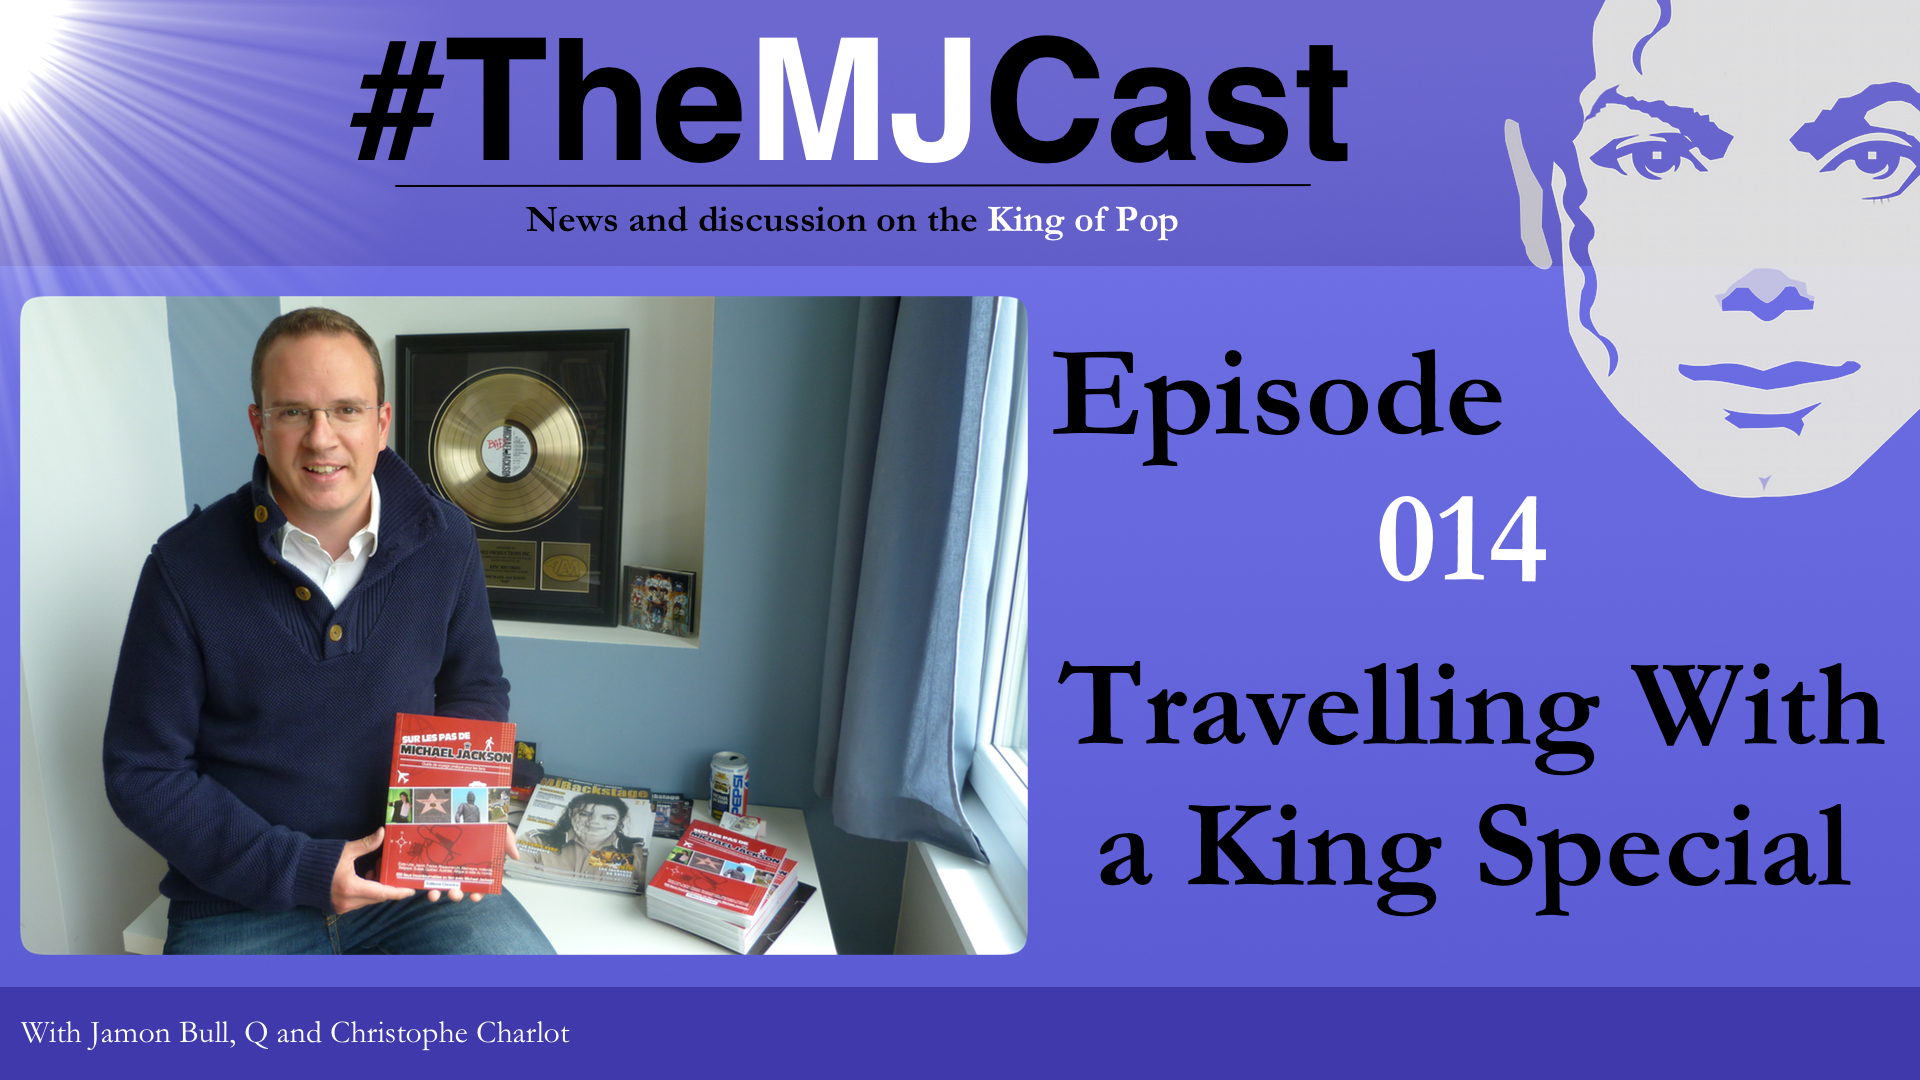 Books the mjcast epiosde 014 travelling with a king special youtube art fandeluxe Image collections